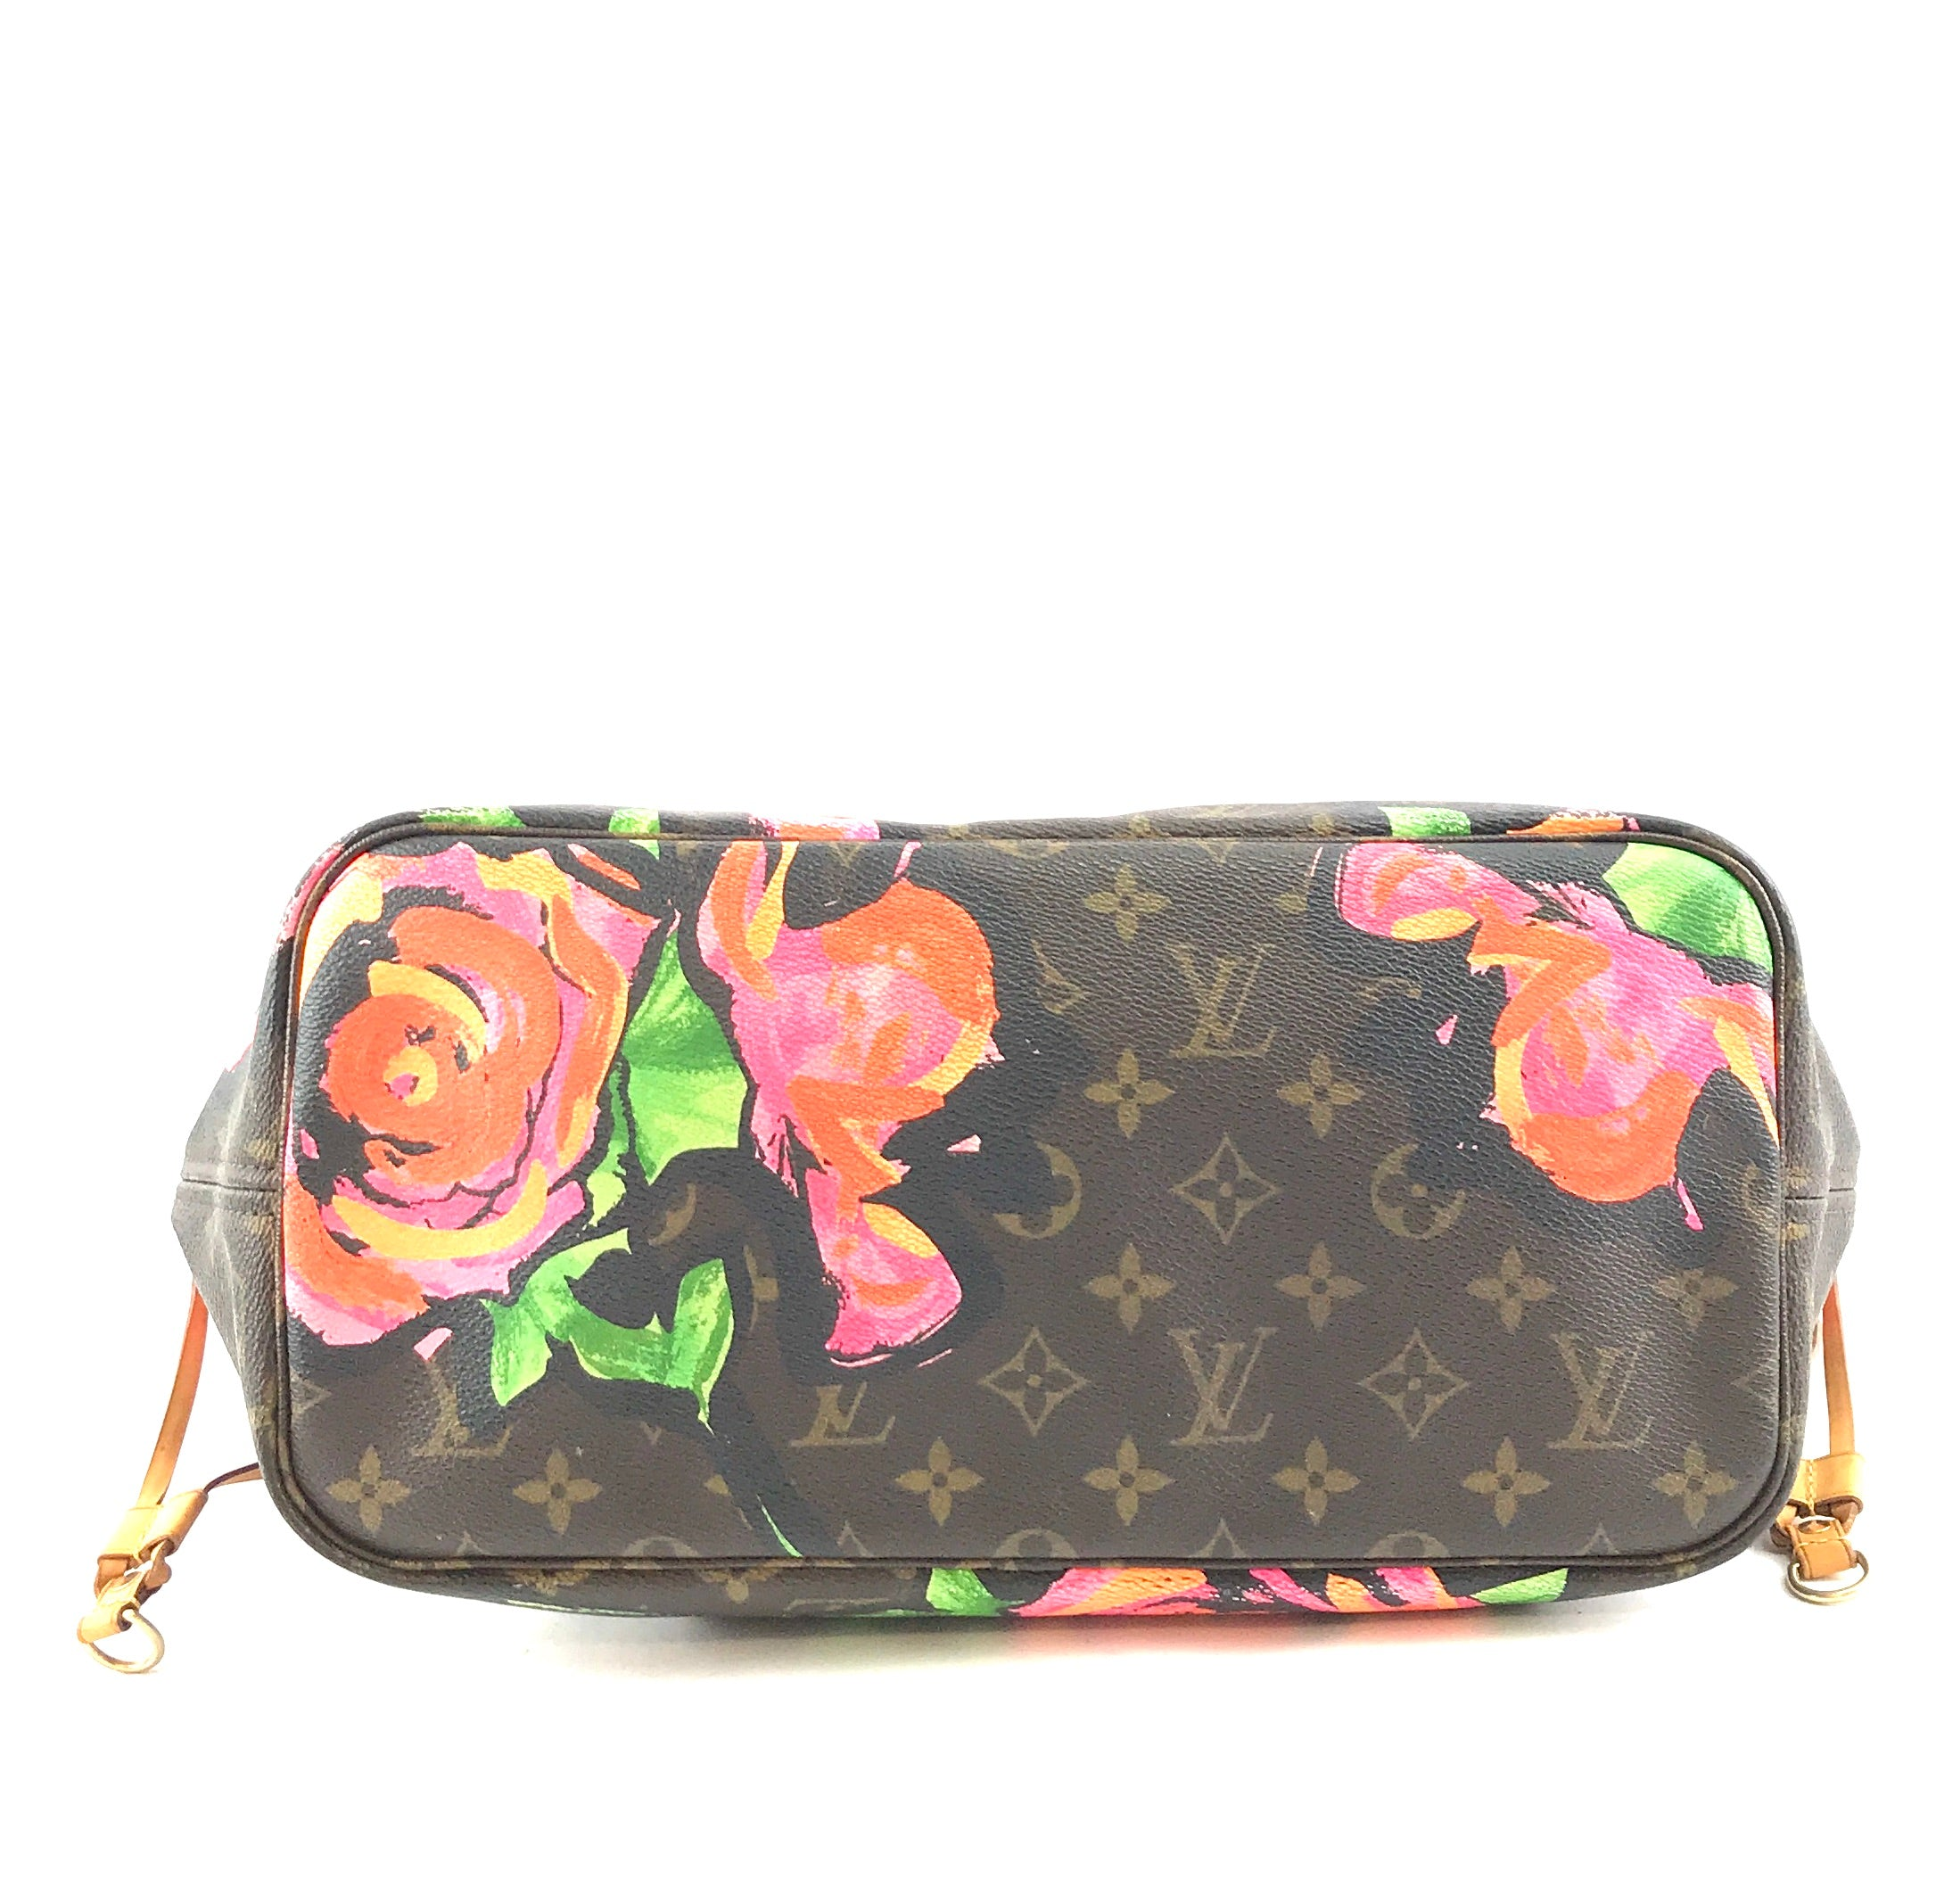 Louis Vuitton Neverfull MM Rose Multicolor Monogram Canvas